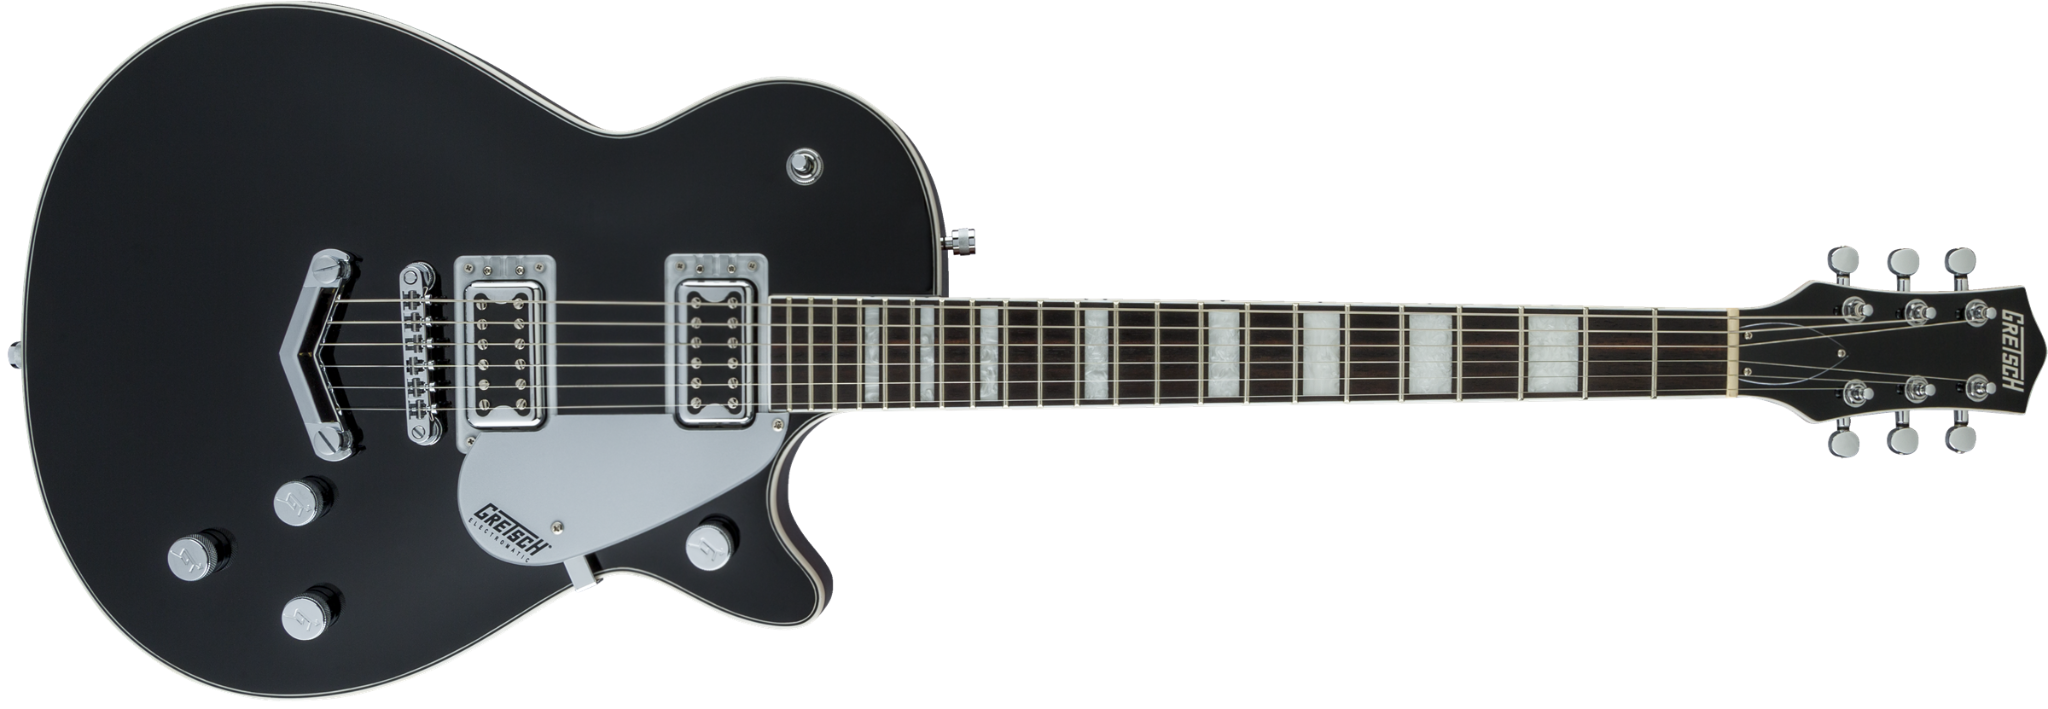 Gretsch G5220 Electromatic Jet BT In Black